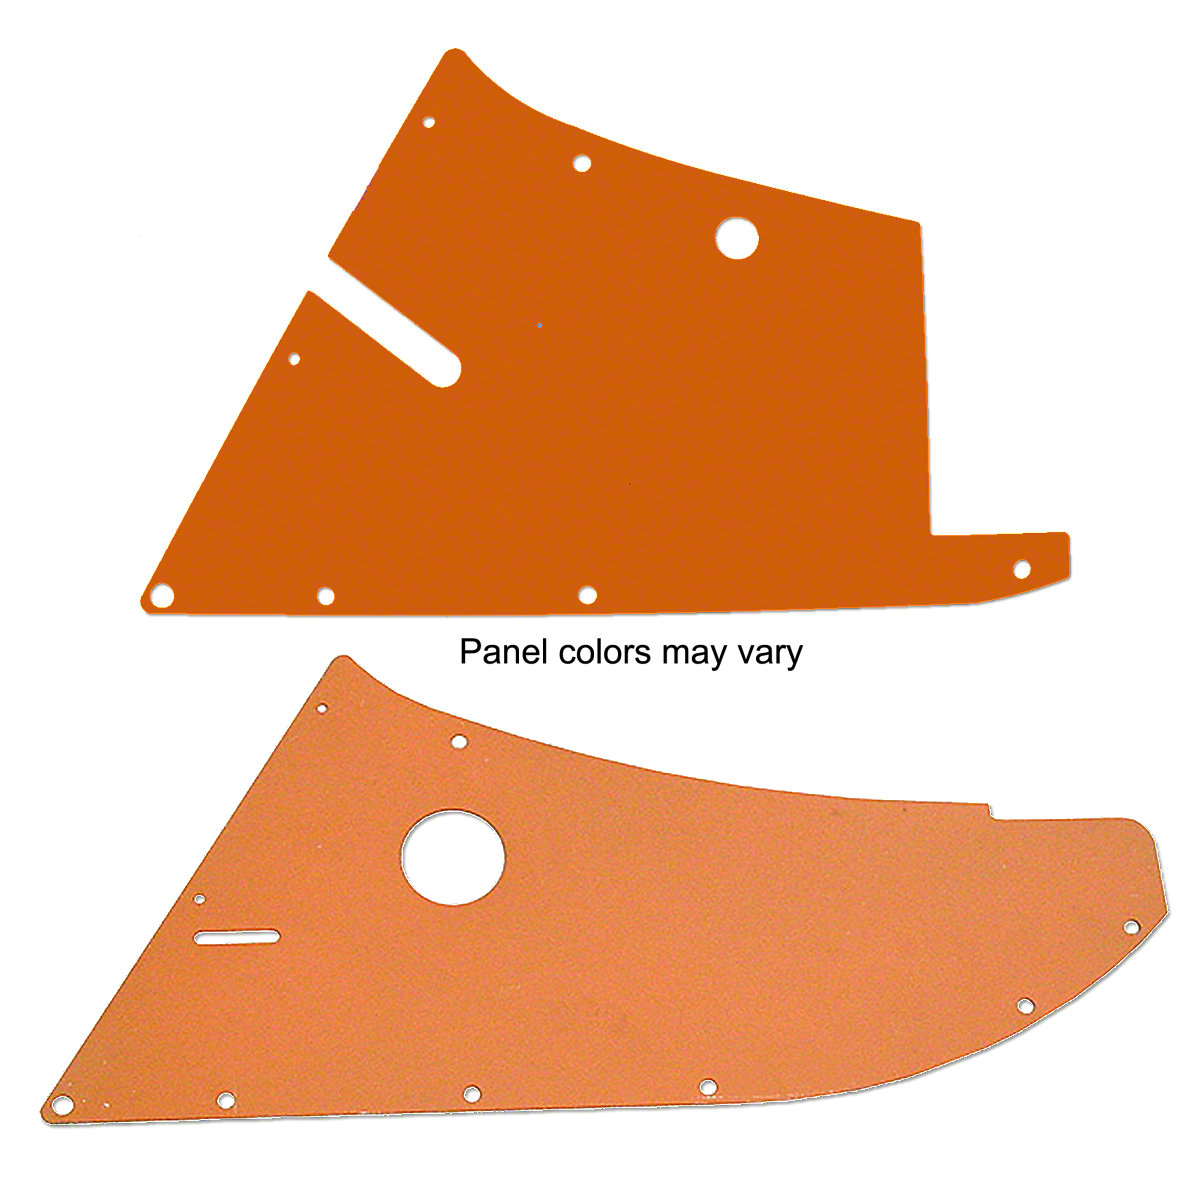 2 Piece Side Panel Set For Allis Chalmers: D10, D12.